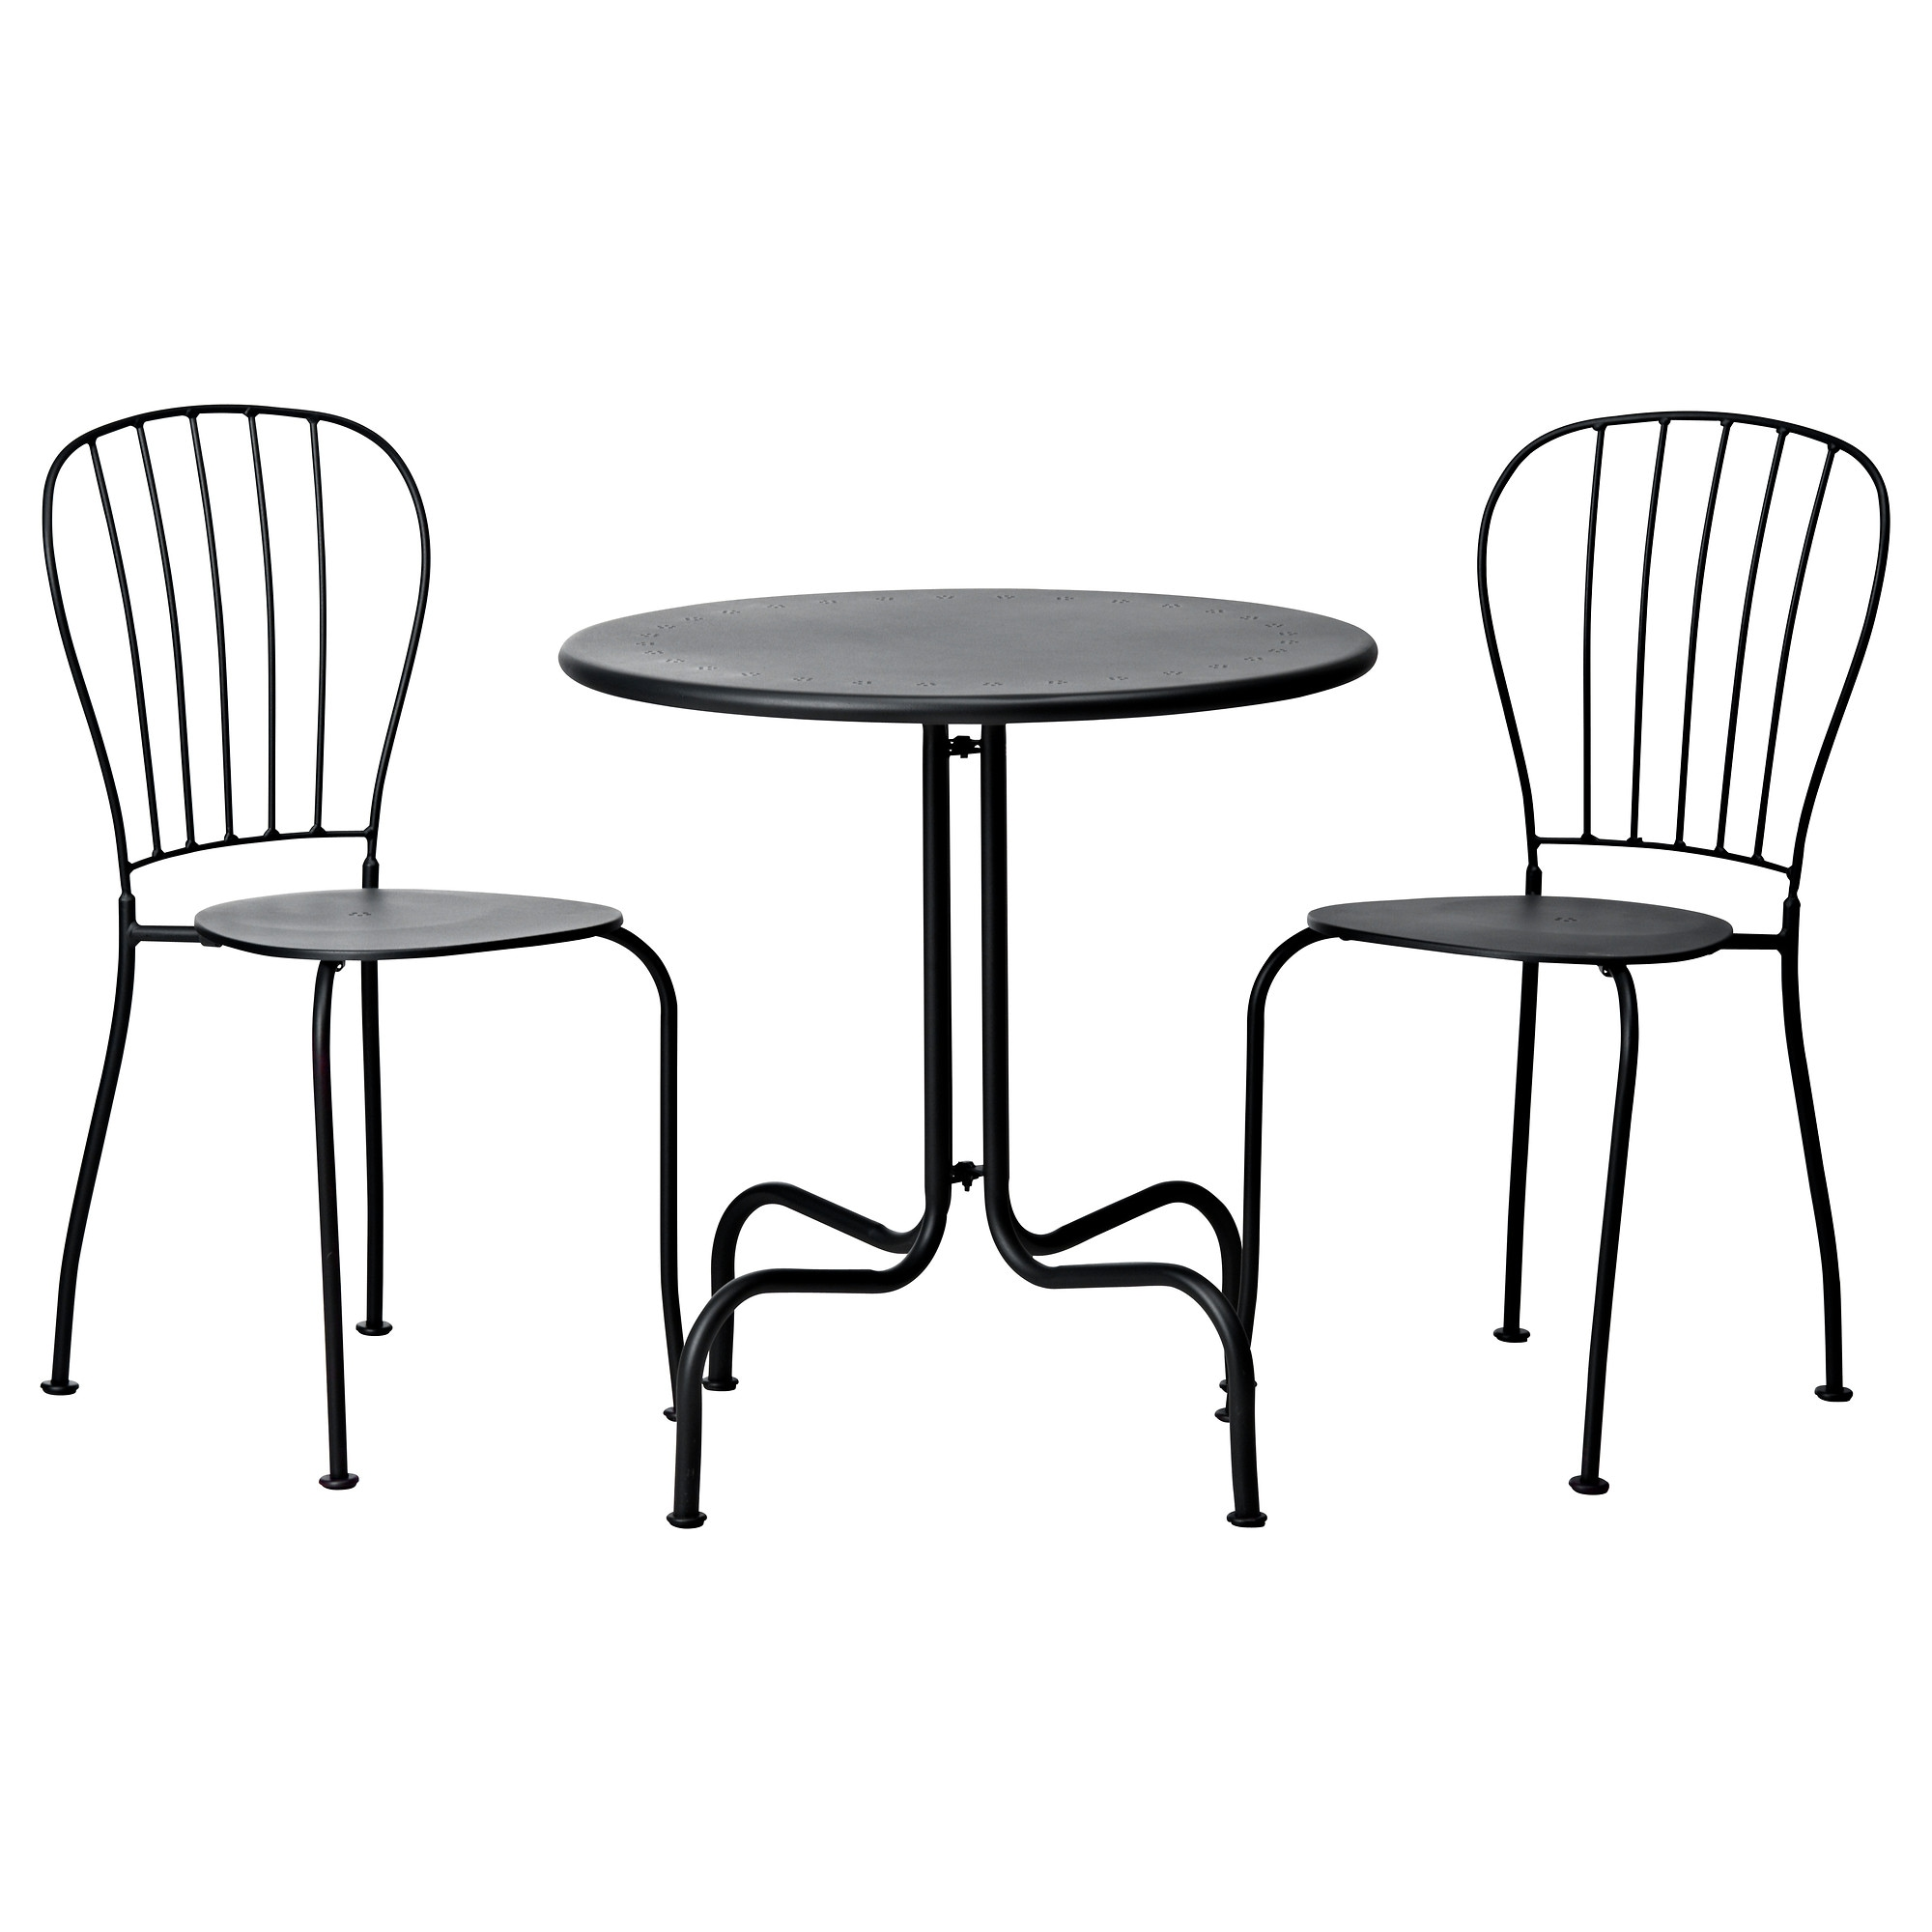 "L""CK– Table 2 chairs outdoor IKEA"